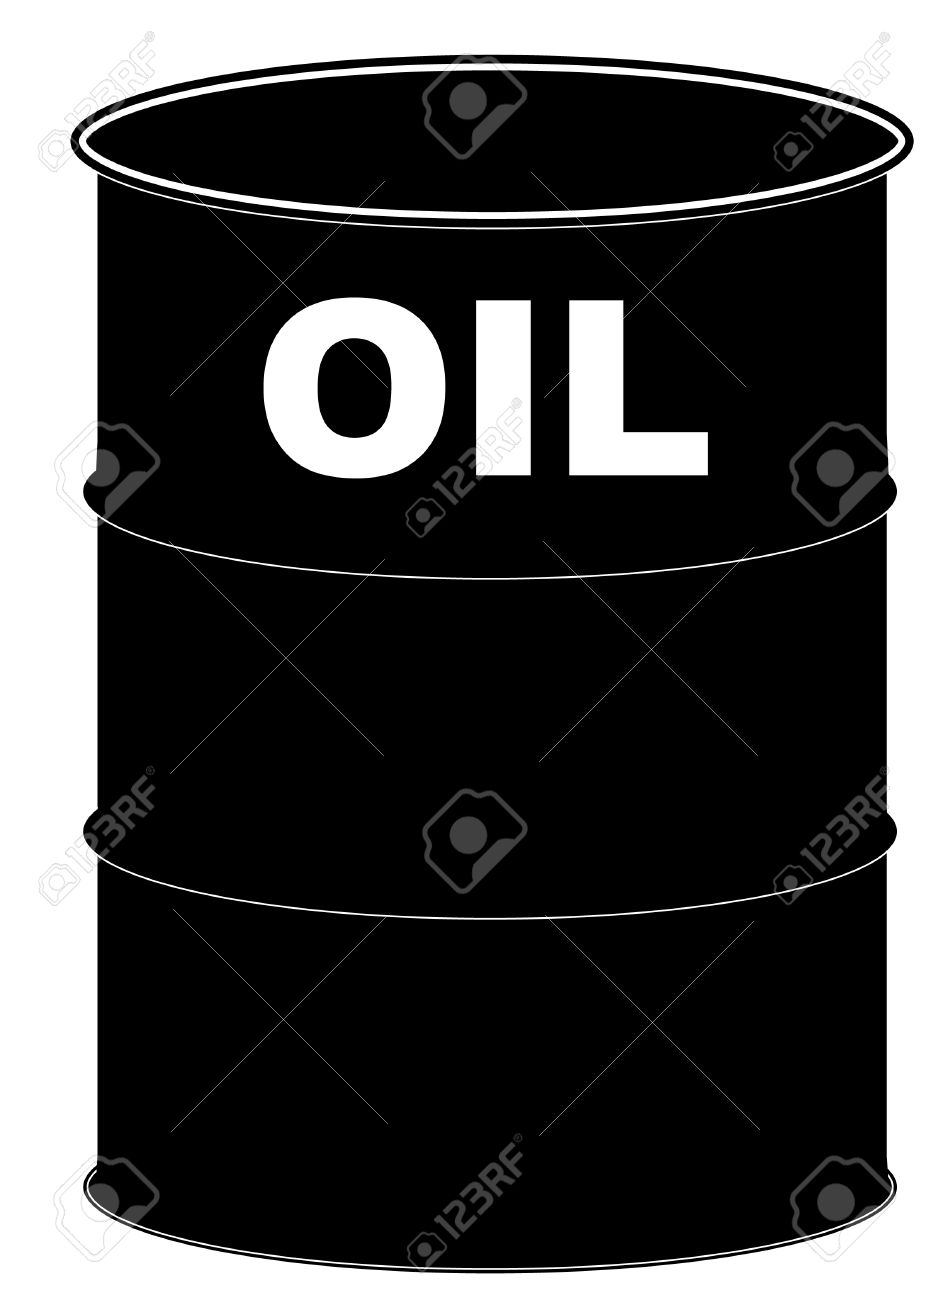 304 Heating Oil Stock Illustrations, Cliparts And Royalty Free.